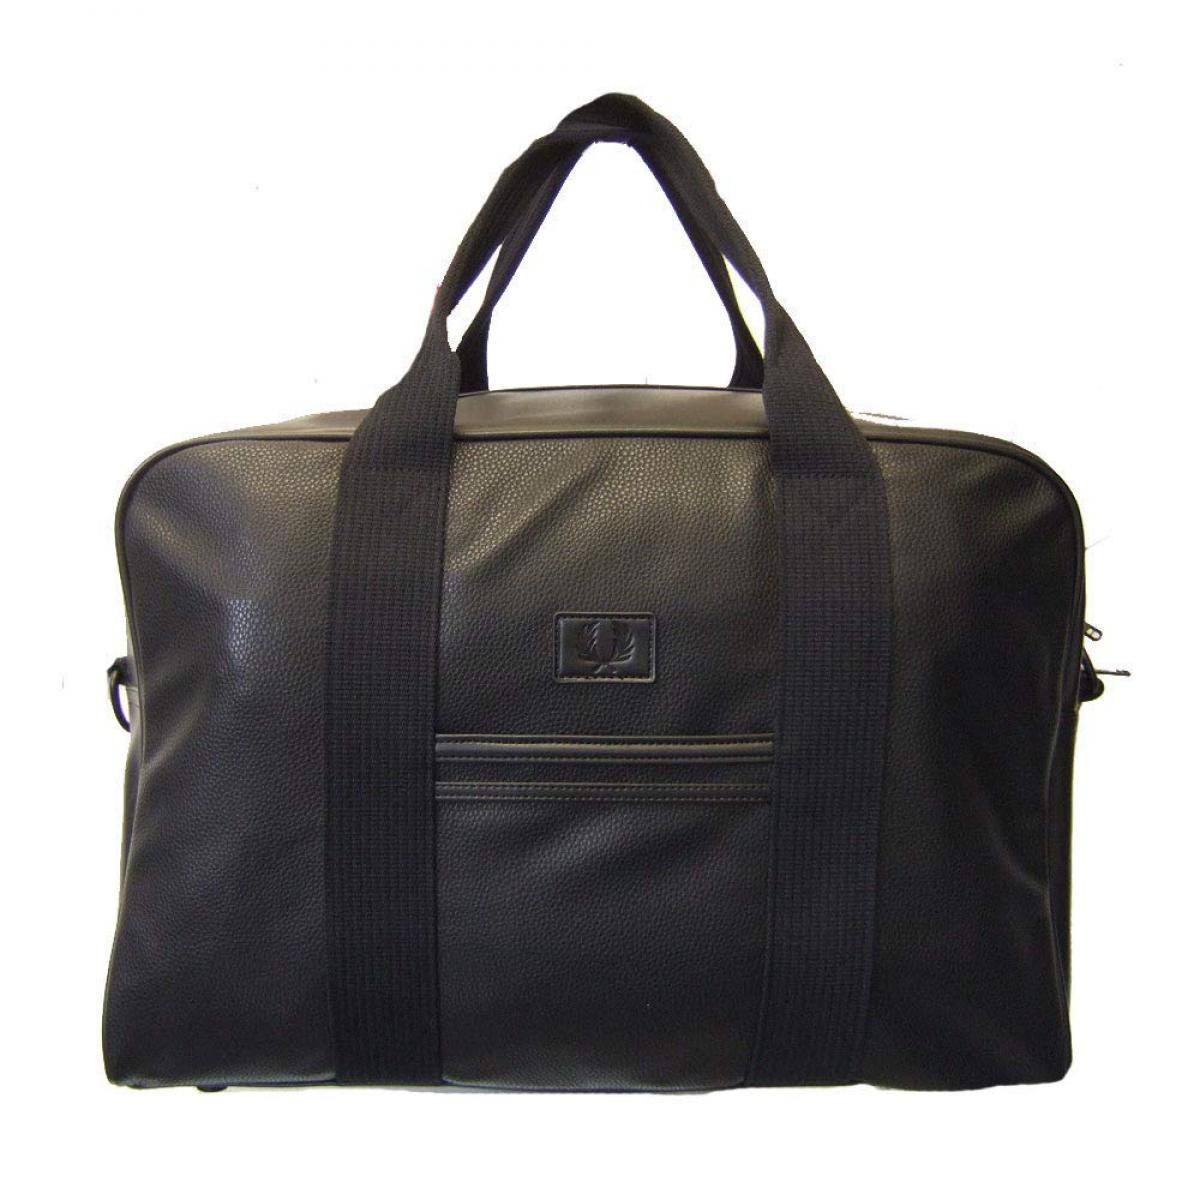 Sac de voyage noir - Fred Perry Fred Perry